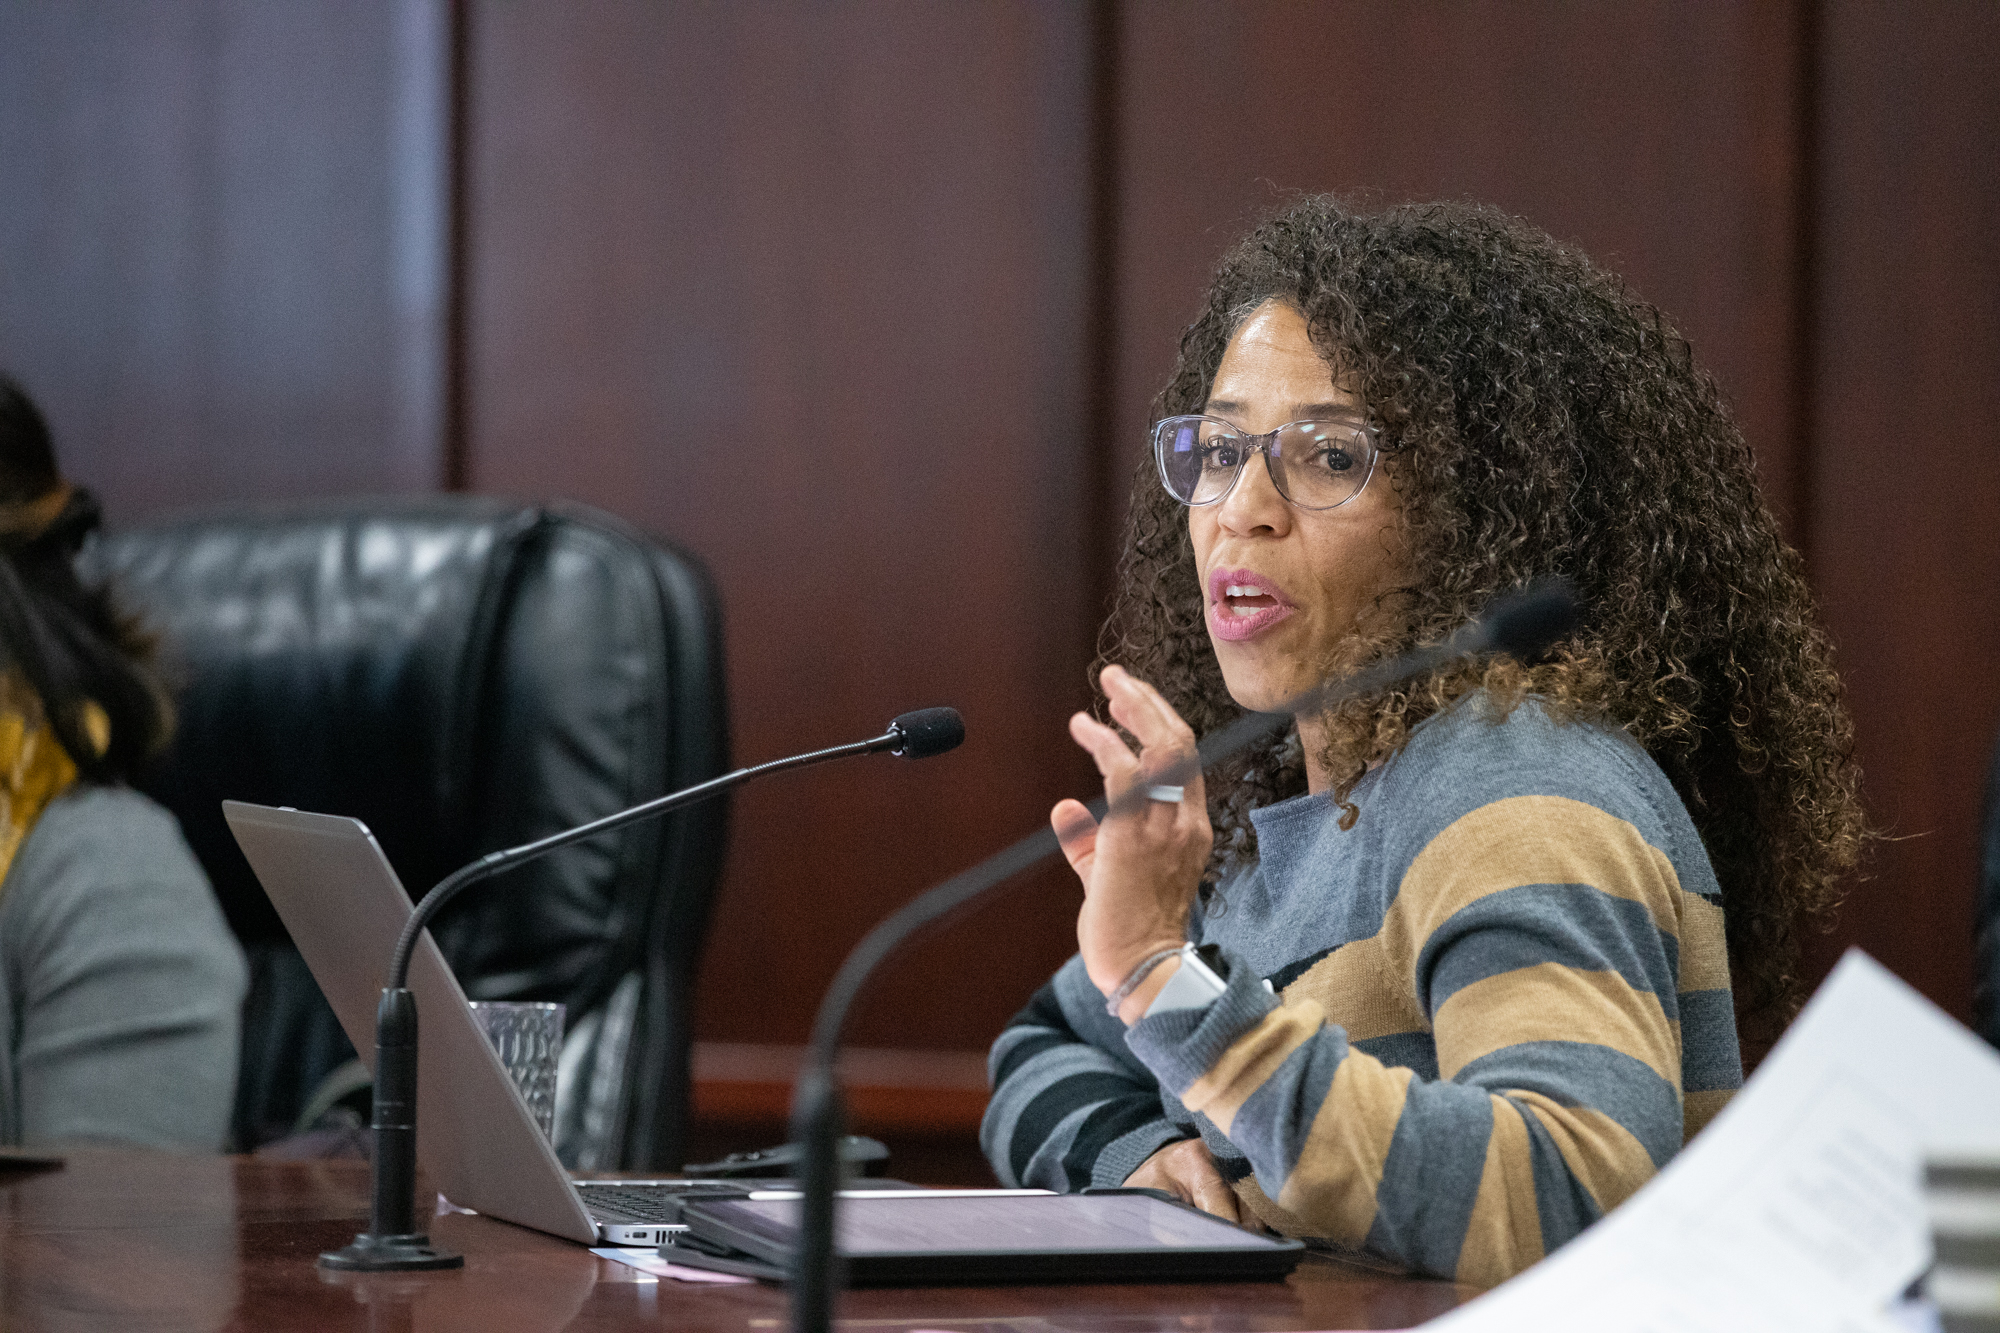 Gina Suadria became the Ravenswood City School District's interim superintendent after Gloria Hernandez-Goff was put on paid administrative leave and forced to resign in February. Photo by Magali Gauthier.